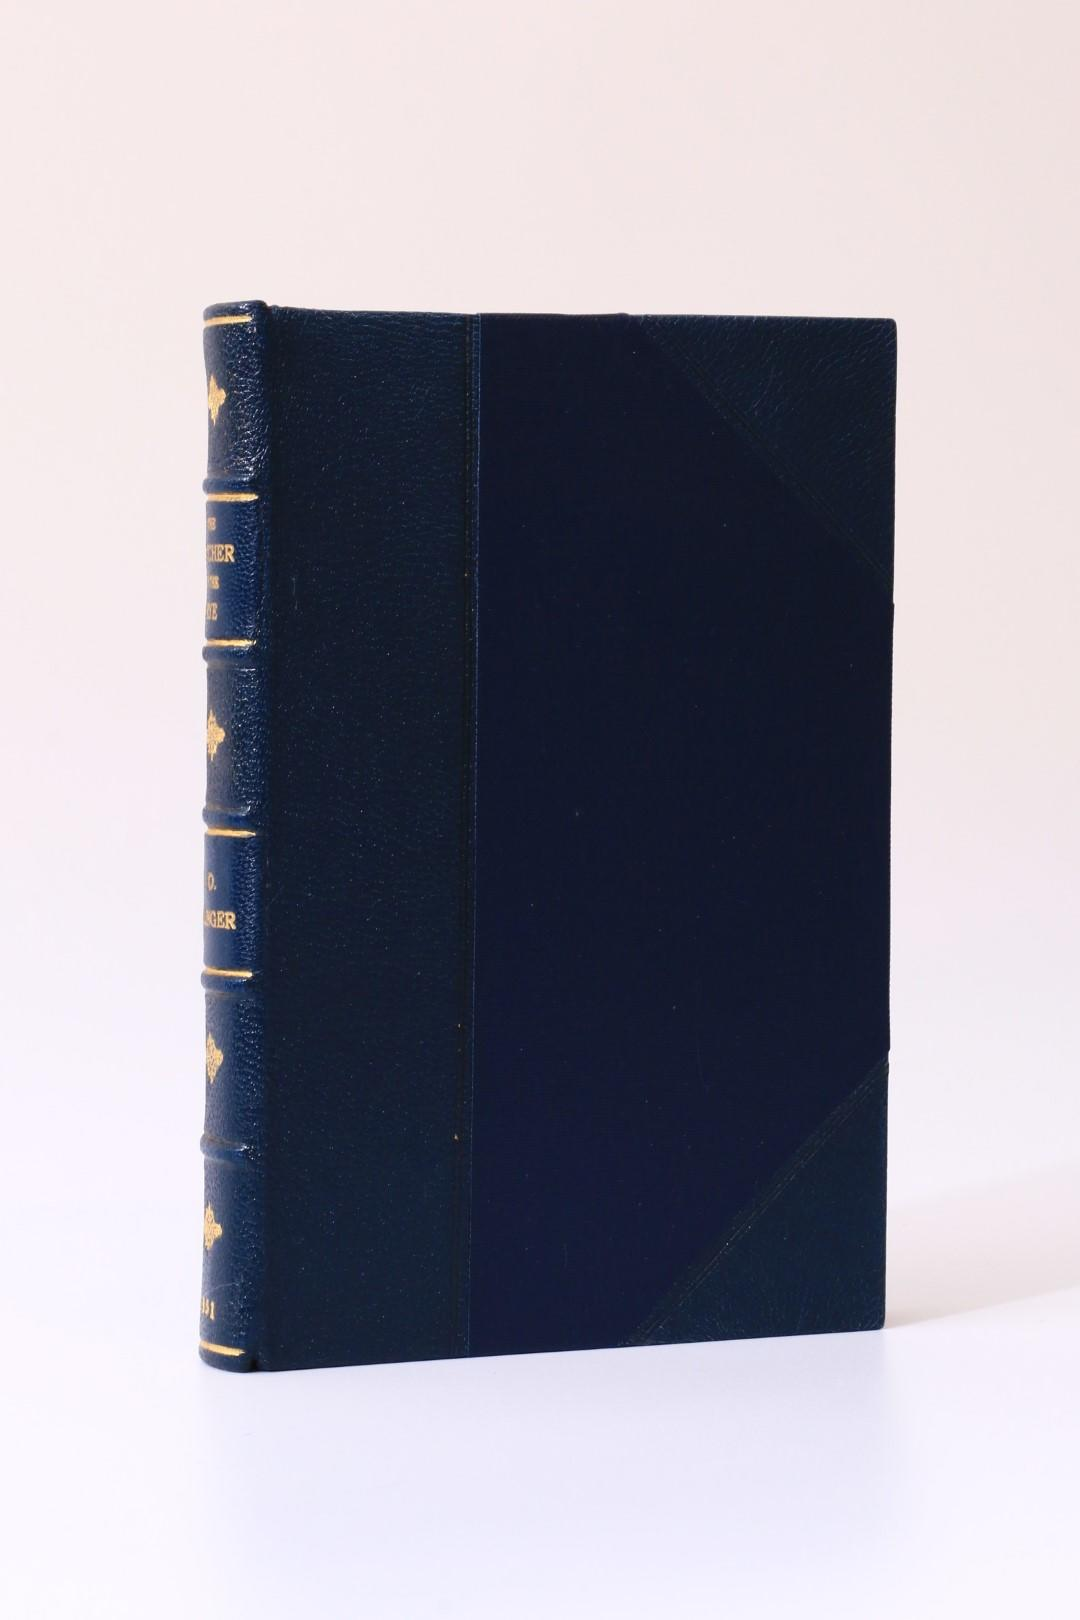 J.D. Salinger - The Catcher in the Rye - Hamish Hamilton, 1951, First Edition.